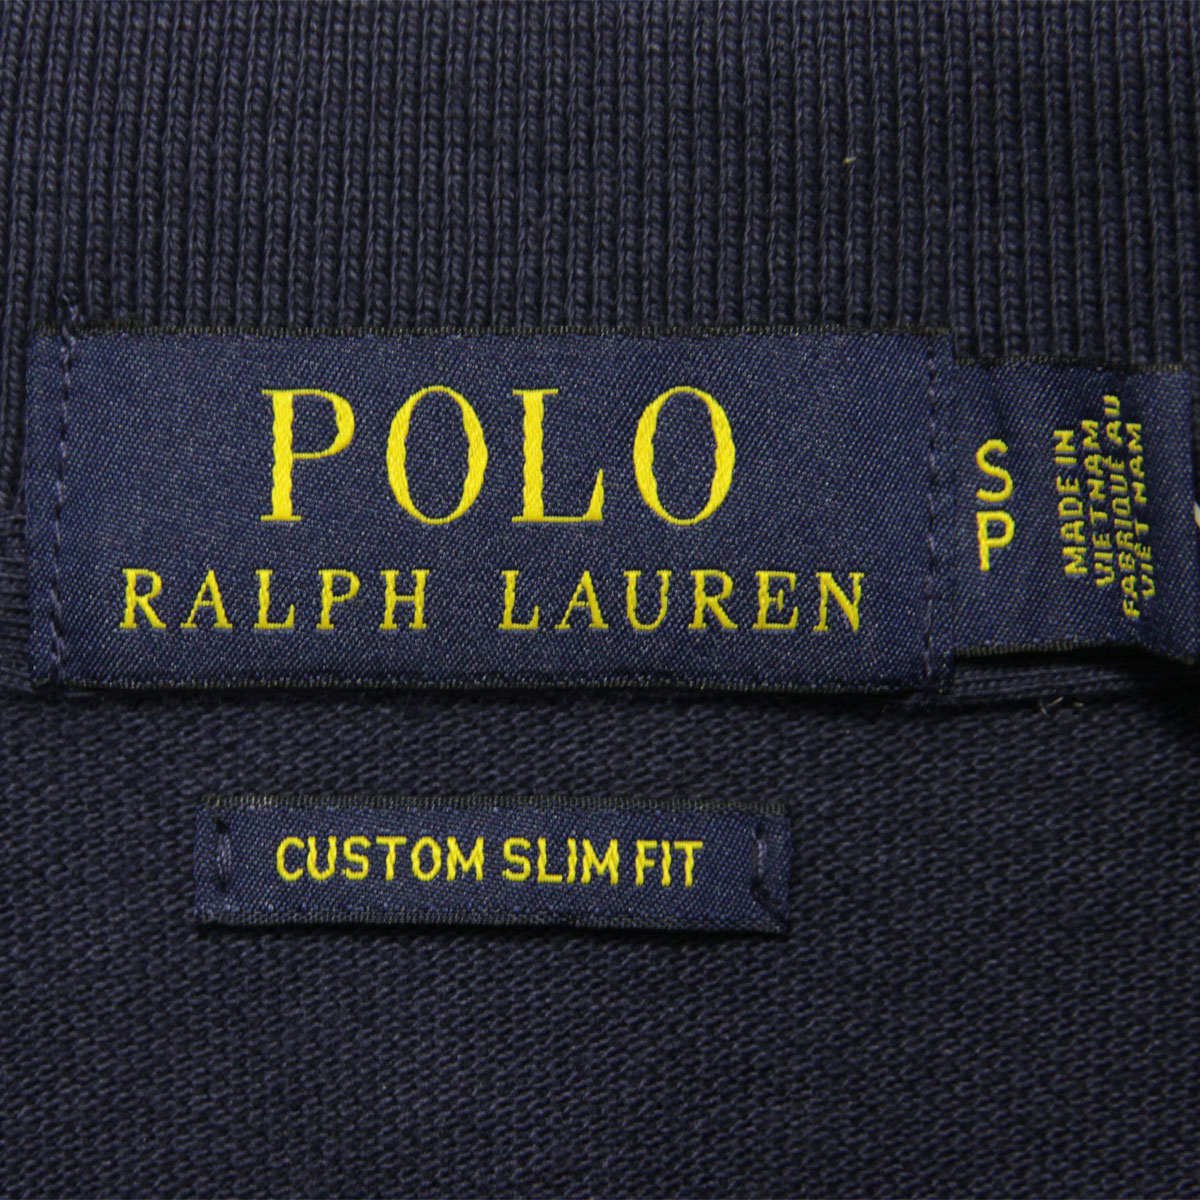 fb5e9b99 ... Polo Ralph Lauren POLO RALPH LAUREN regular article men custom slim  fitting big pony short sleeves ...